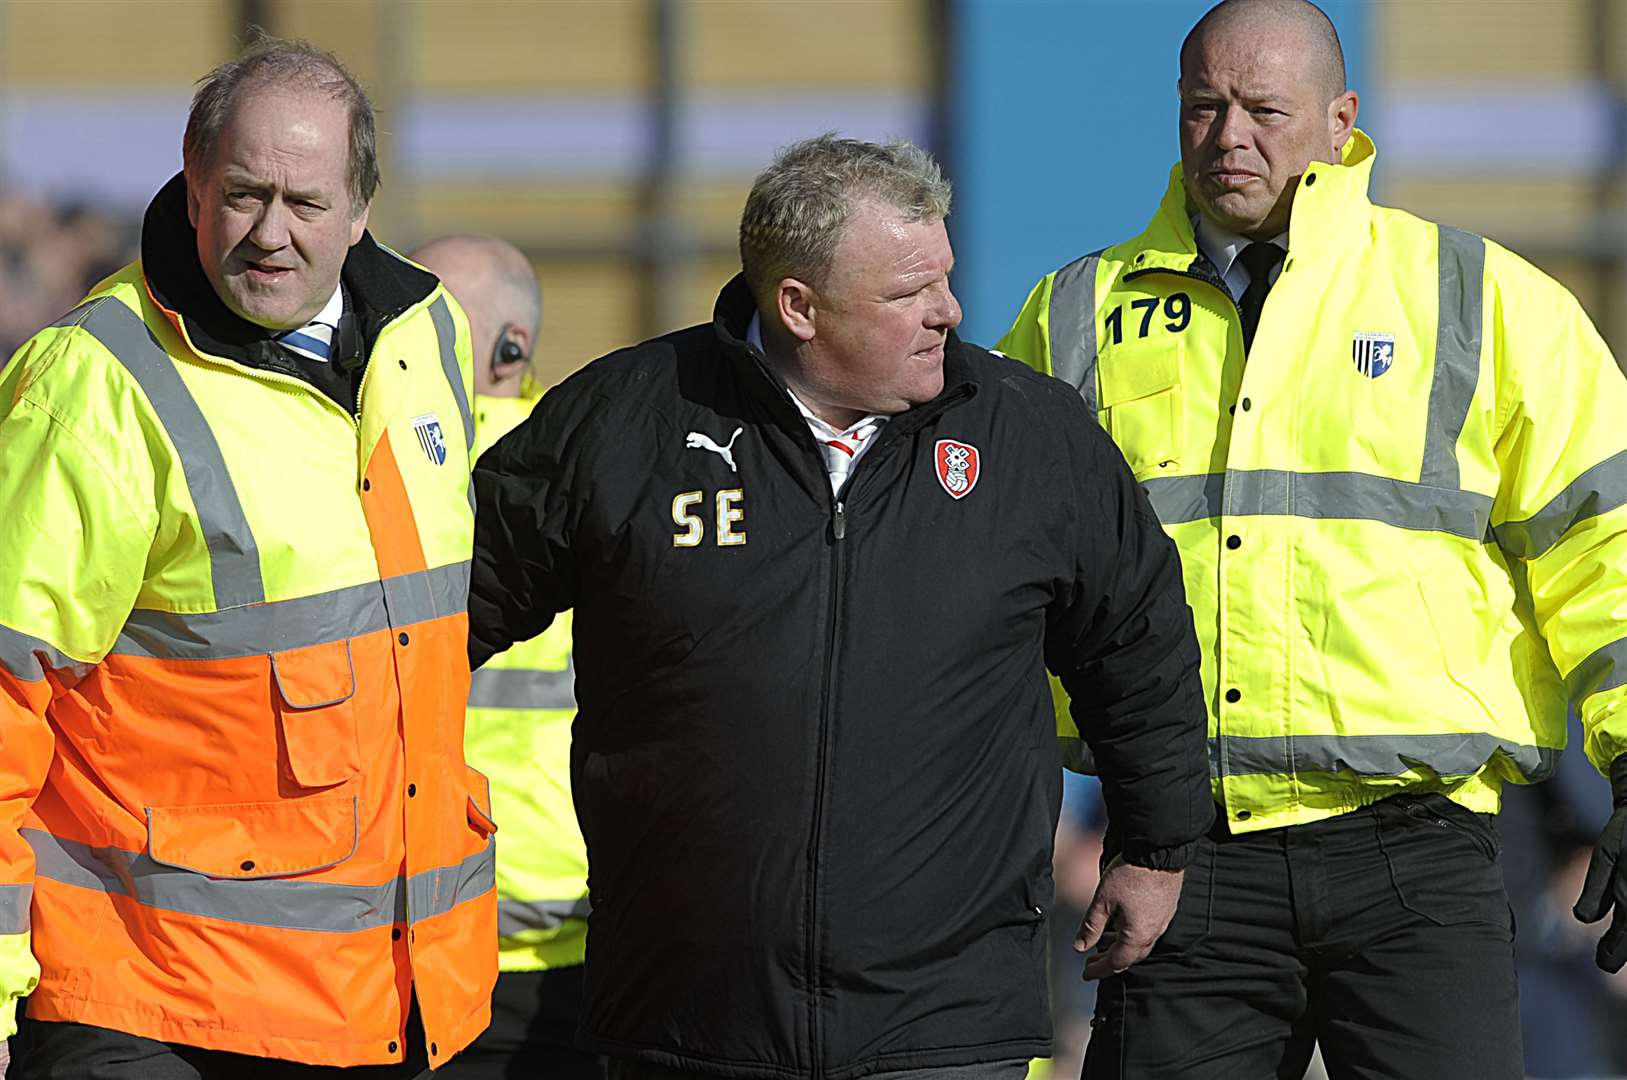 Rotherham manager Steve Evans is escorted from the pitch by stewards for his own safety on a previous visit Picture: Barry Goodwin